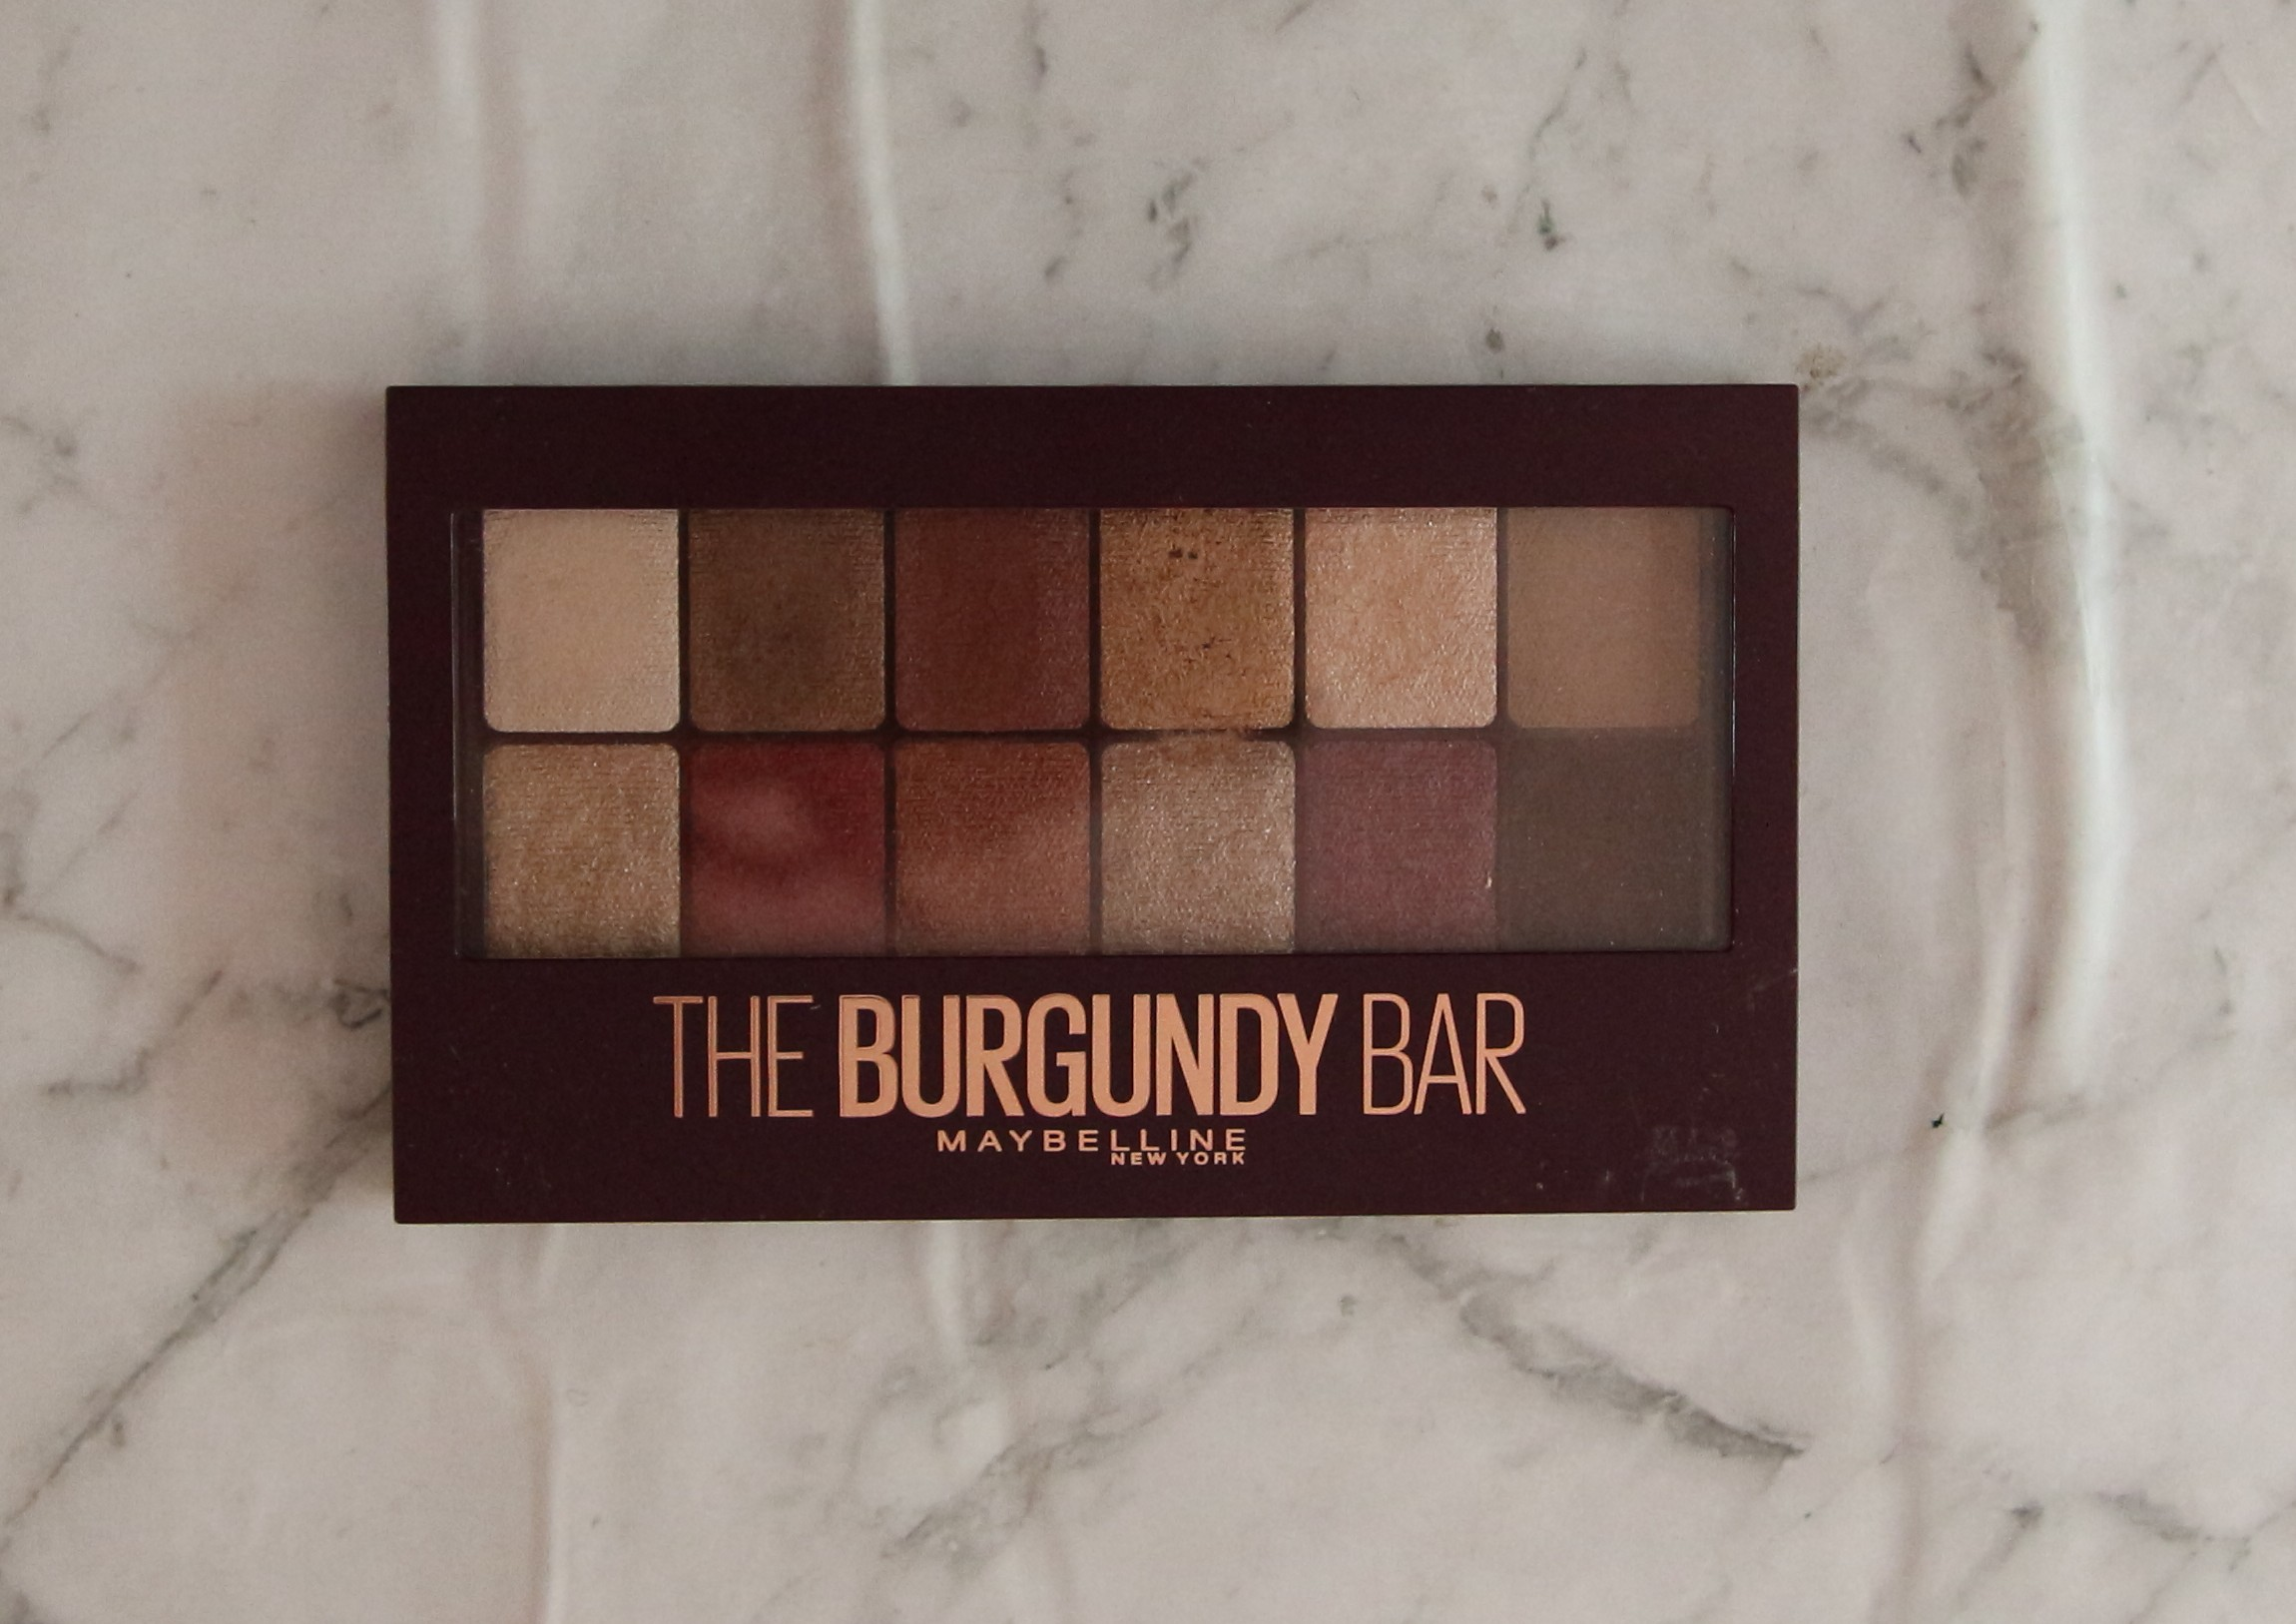 c61bd6ef190 Maybelline The Burgundy Bar Review and Swatches ...